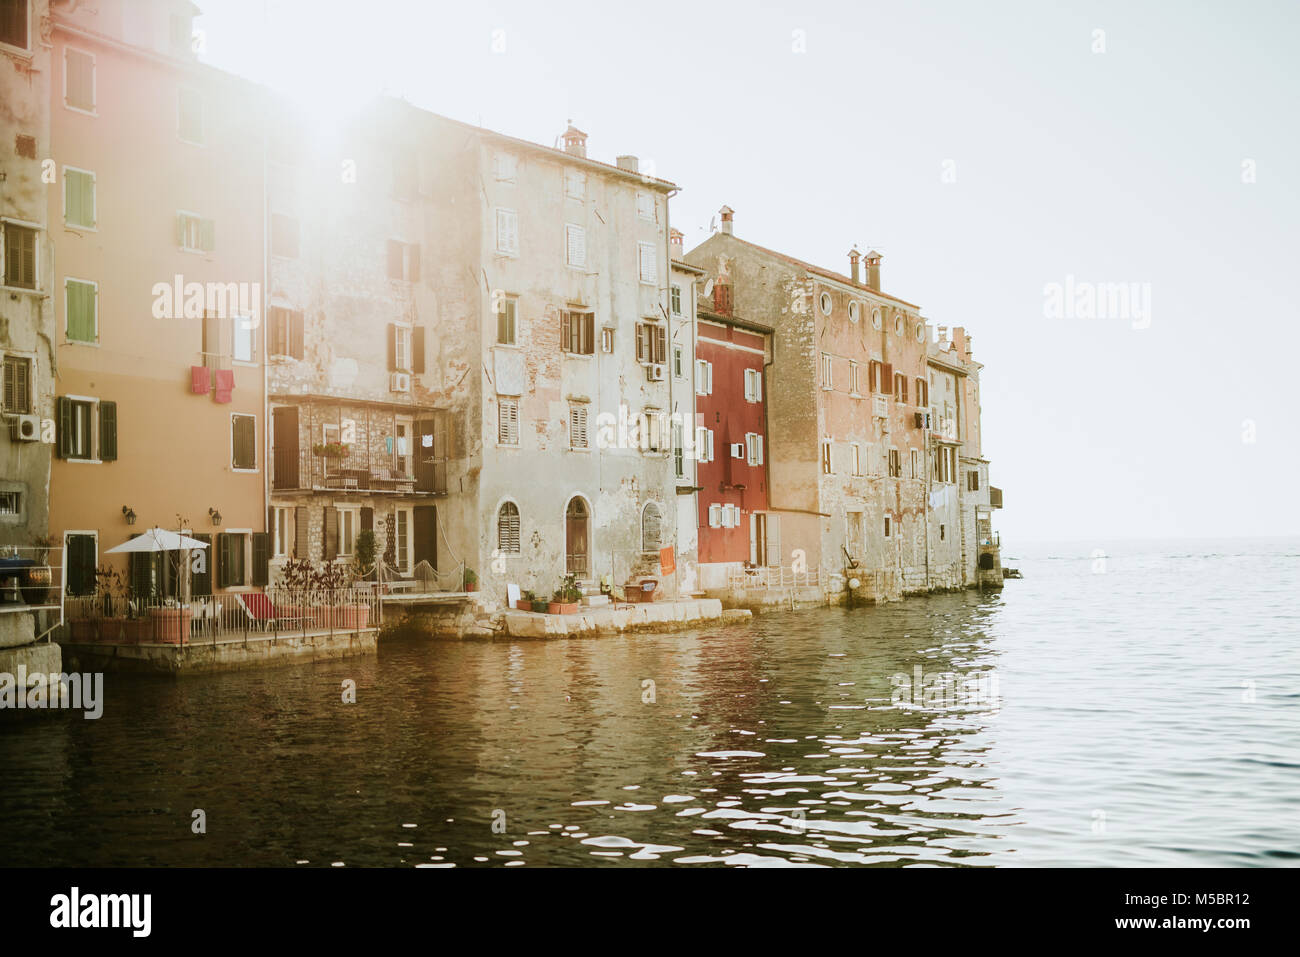 Beautiful City of Rovinj in Croatia - Stock Image